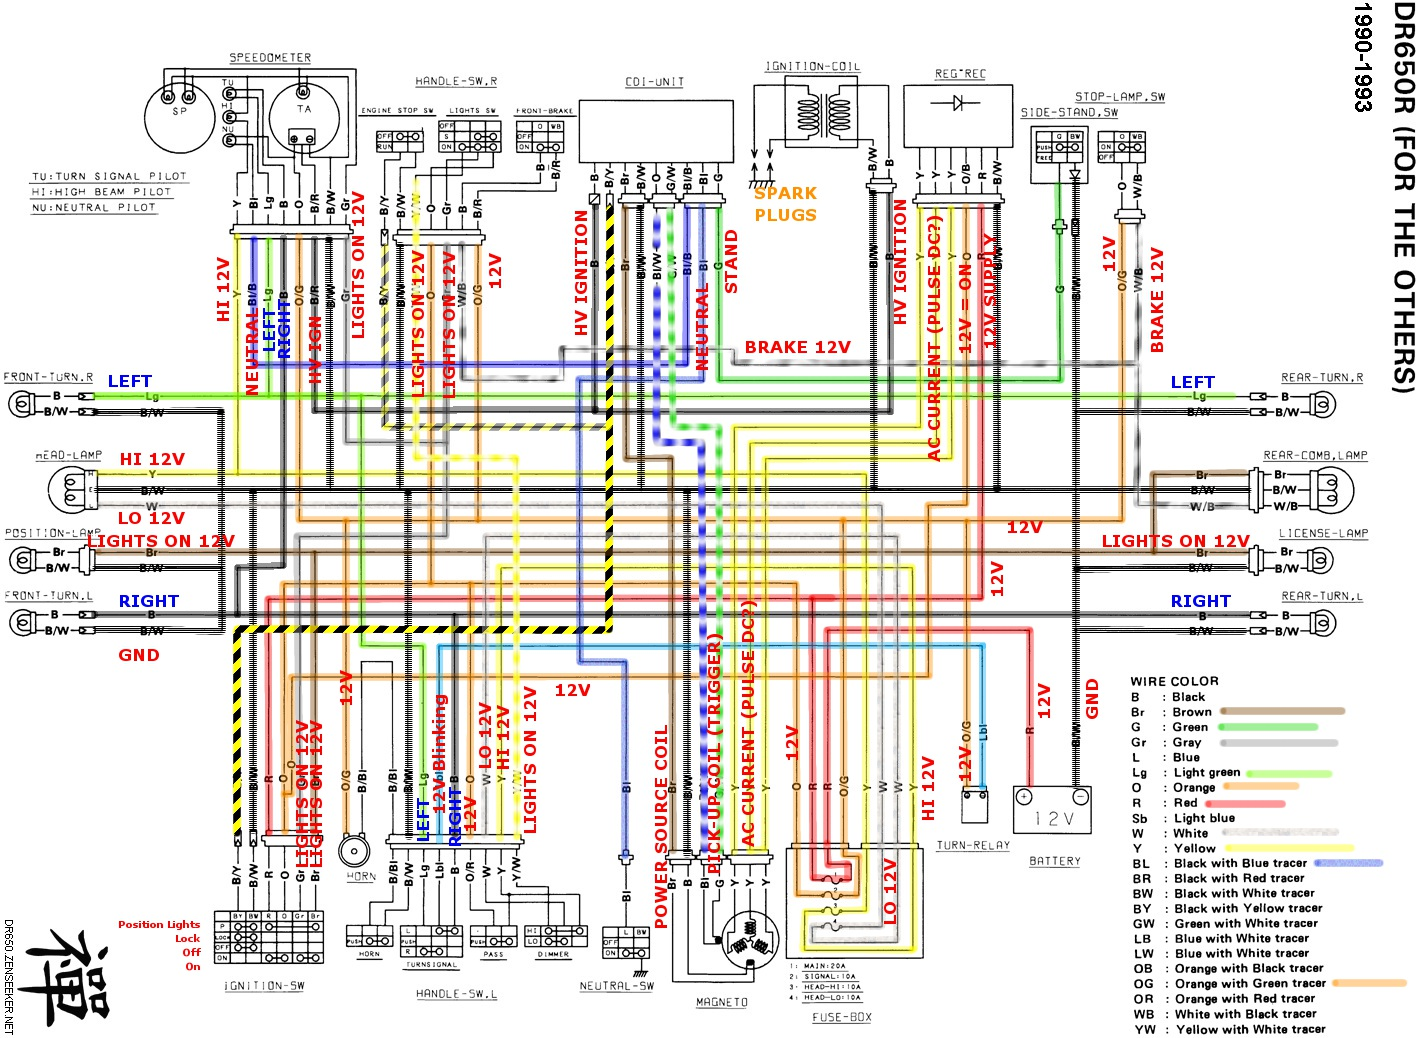 hight resolution of dr650se wiring diagram experts of wiring diagram u2022 rh evilcloud co uk suzuki xl7 wiring diagram